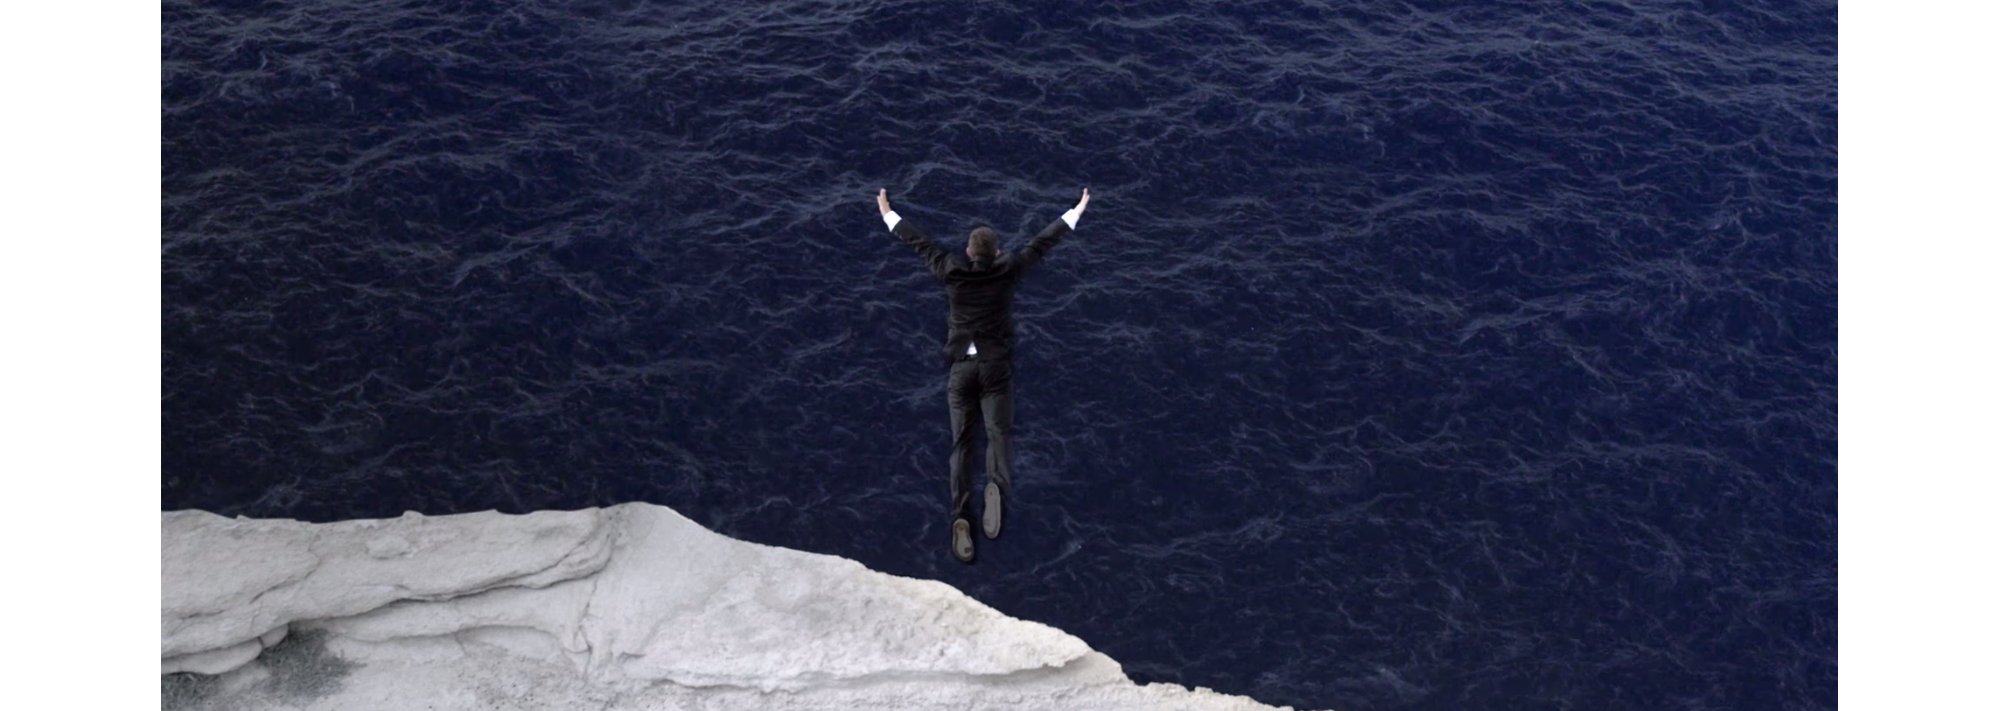 David Colturi jumping off the cliff in the Superblack suit by HUGO